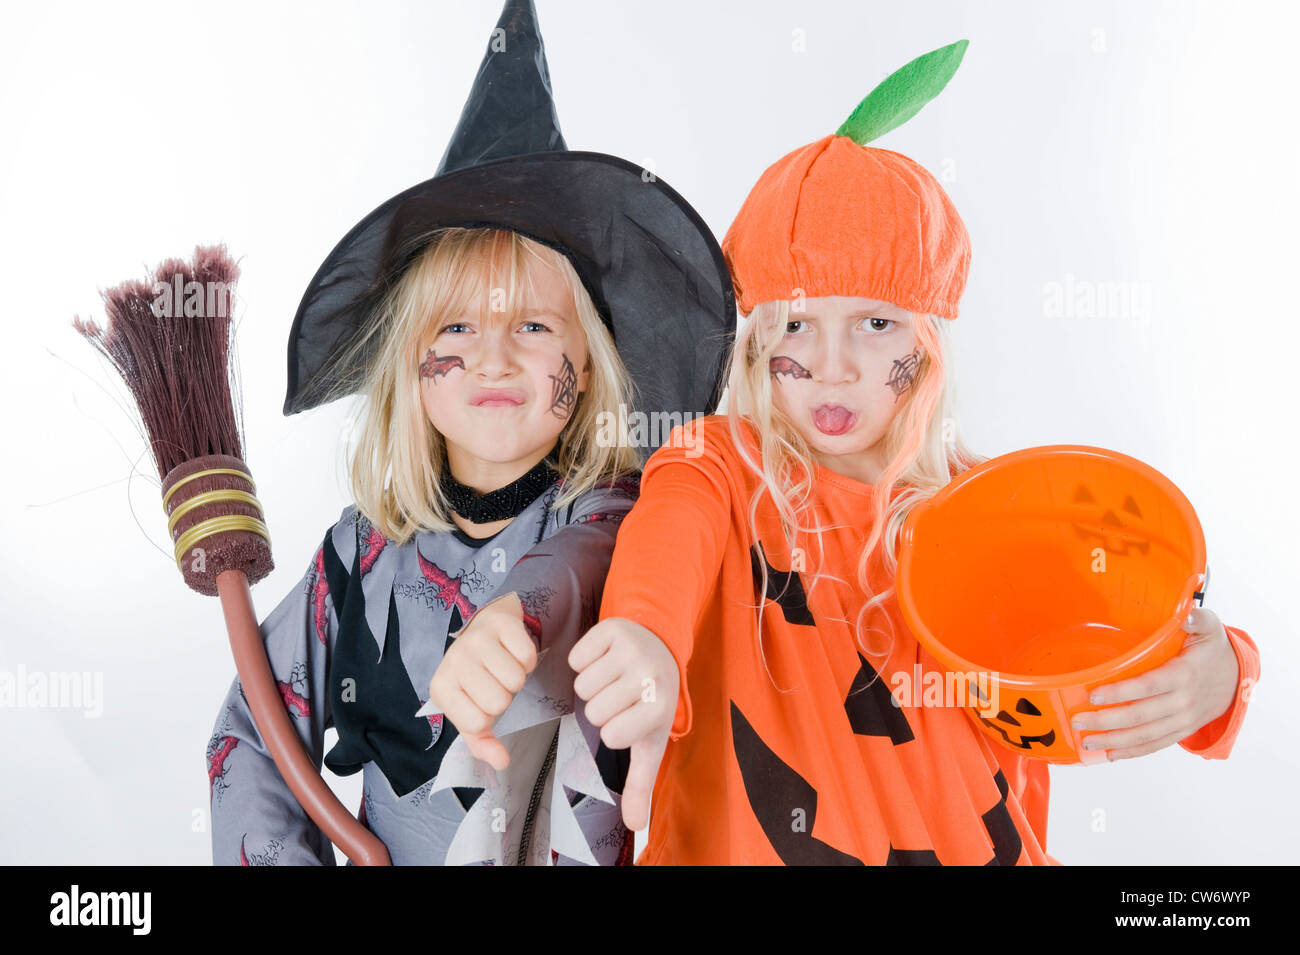 Mythical Creatures Halloween Costumes.Mythical Halloween Costumes Play Sc 1 St Blog Talk Radio